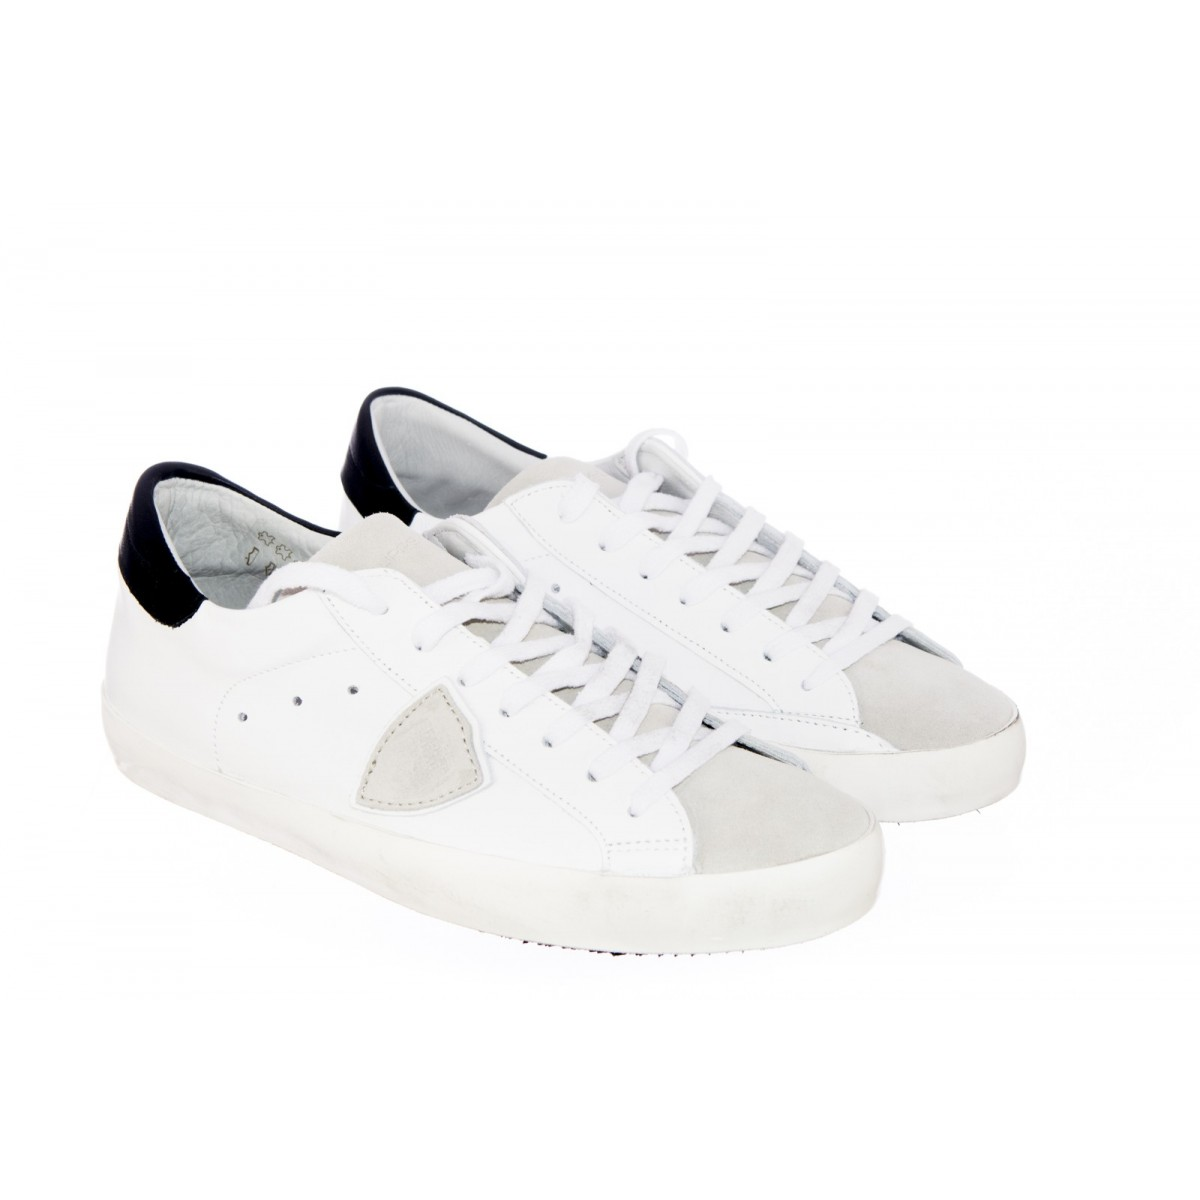 Scarpa Philippe model paris - Cllu classic low veau